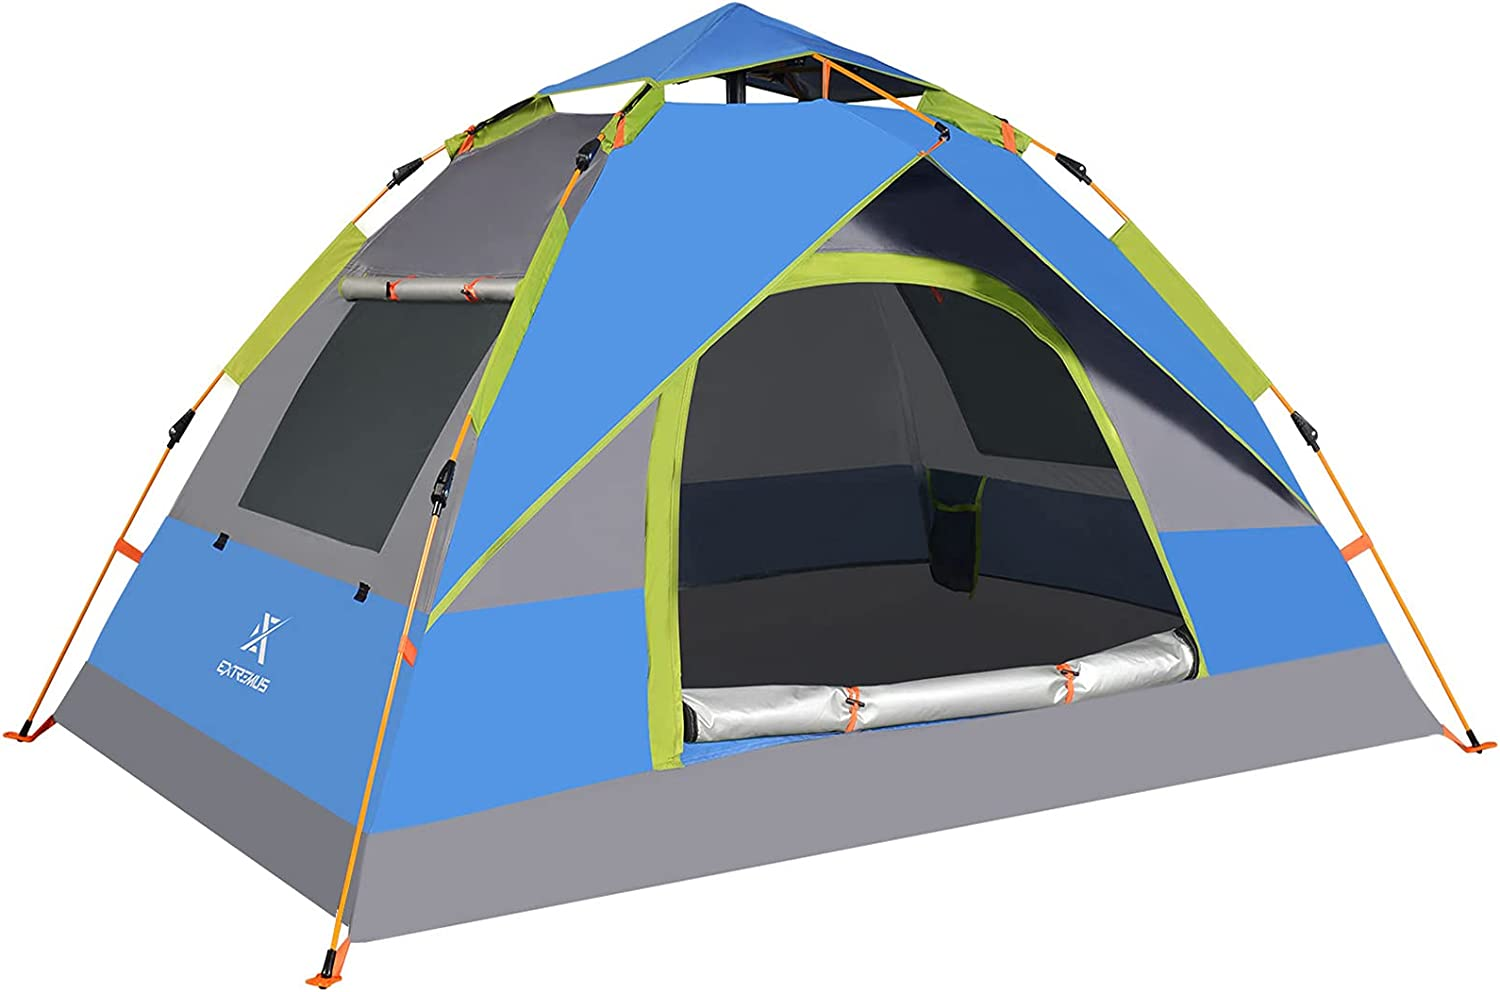 Extremus Mission Mountain Instant Pop-Up Beauty products Camping Tucson Mall Tent 2 6 Per 4